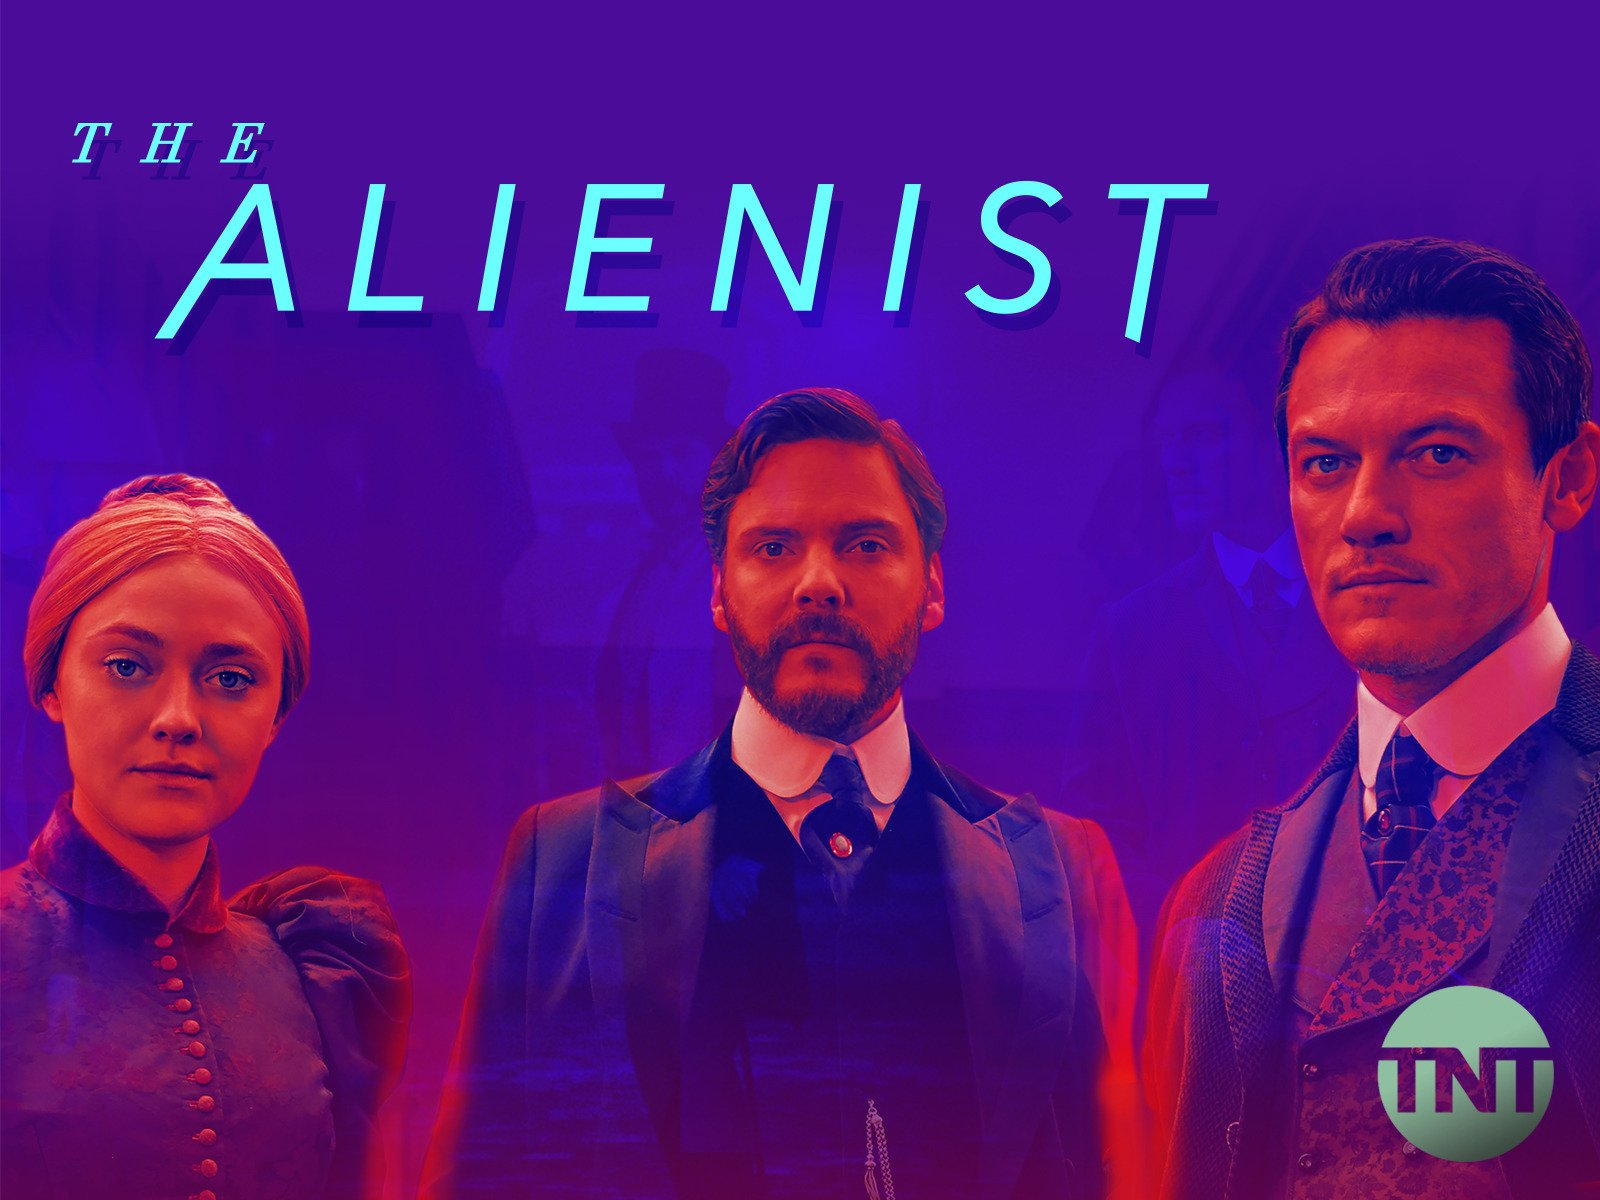 , The Alienist Season 2 Episode 5: Release Date And Who Is In Cast?